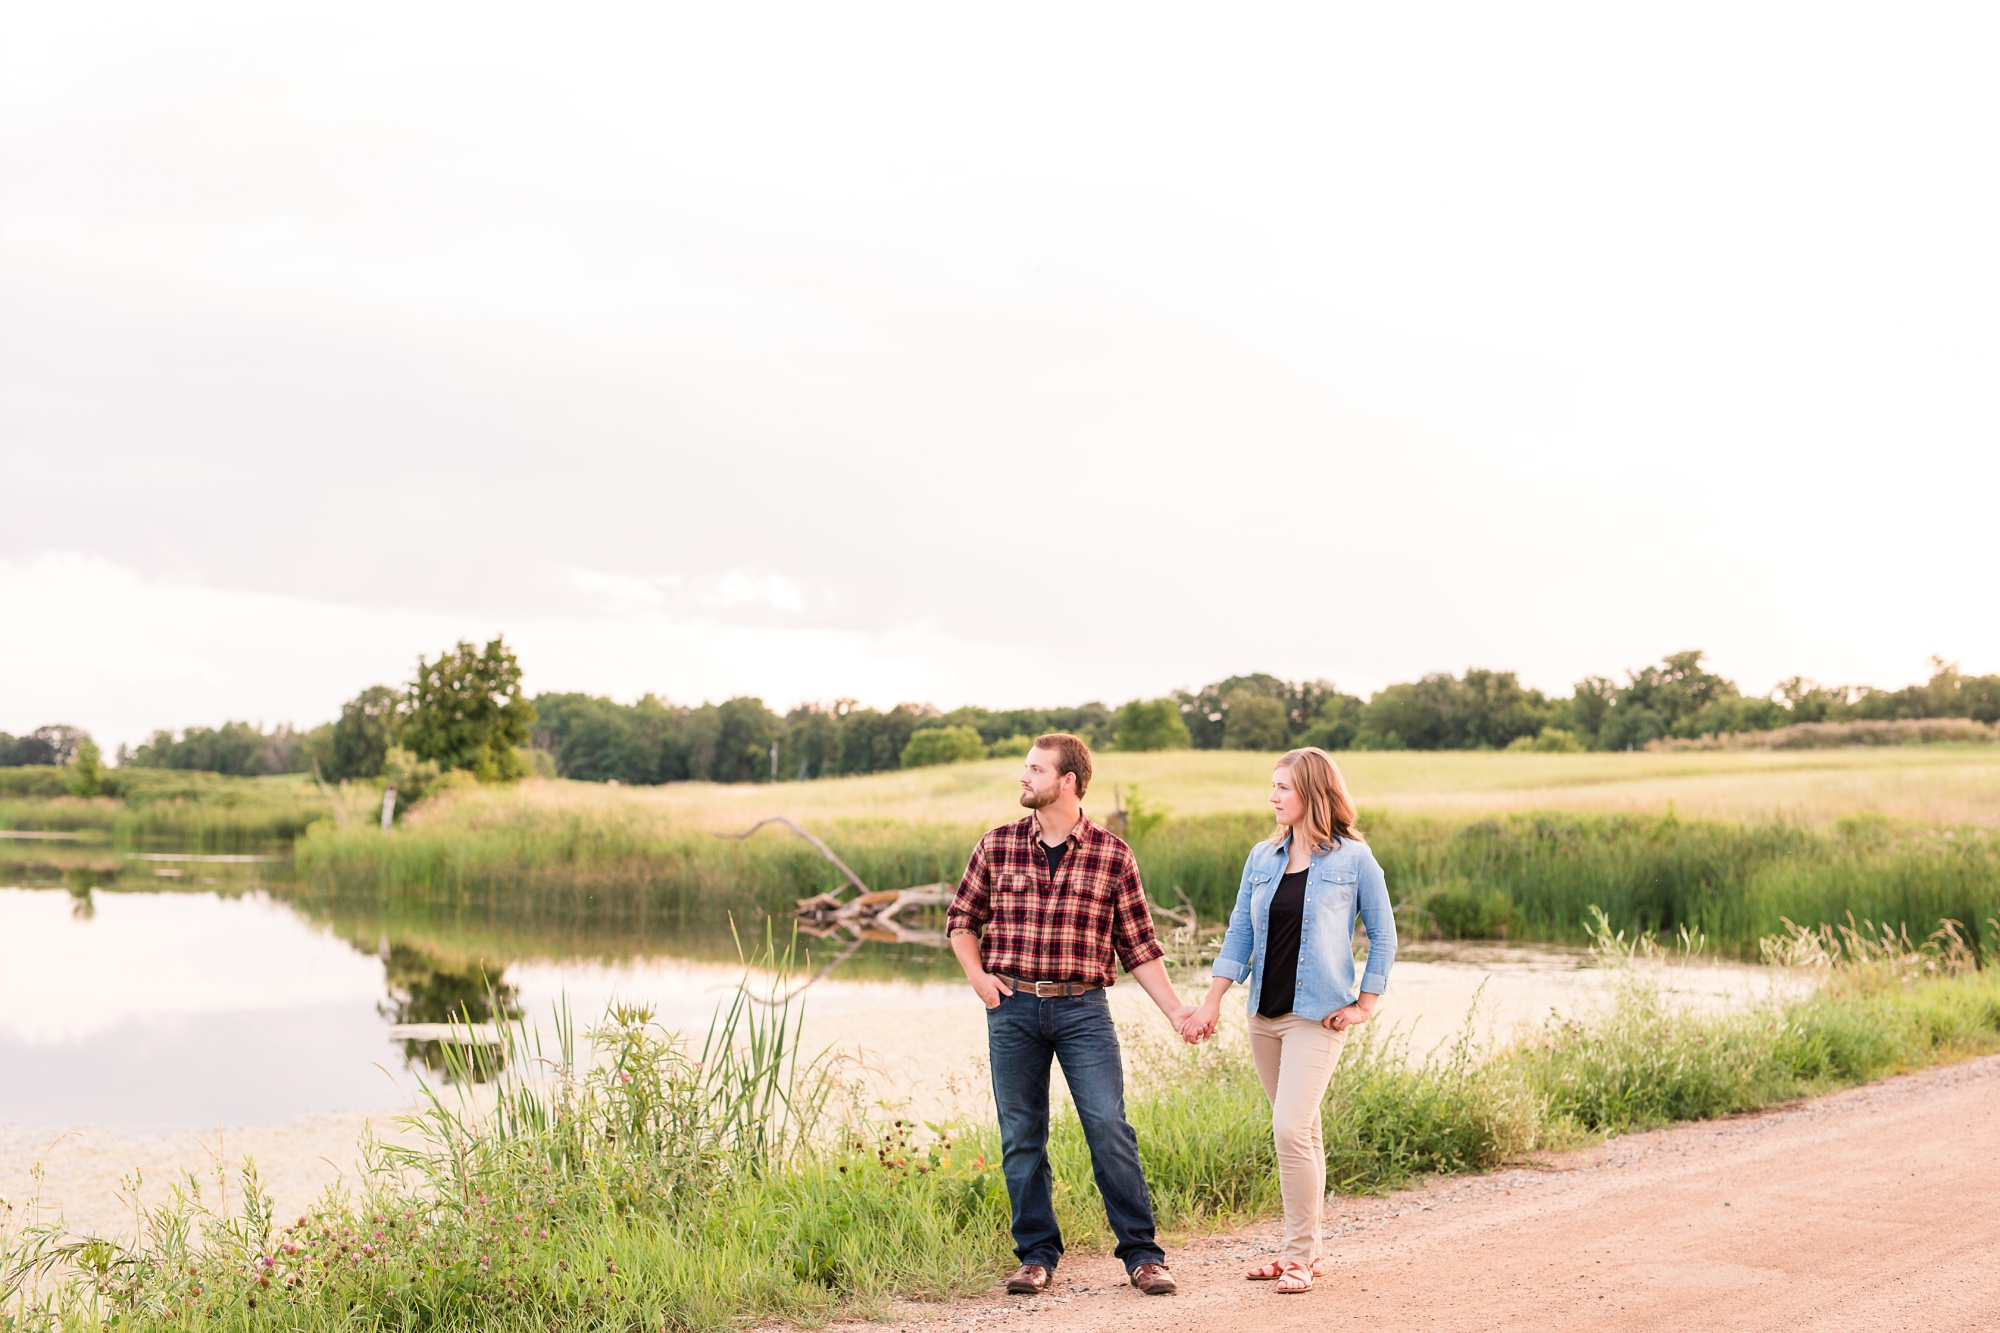 AmberLangerudPhotography_Countryside Engagement Session in Minnesota_3133.jpg